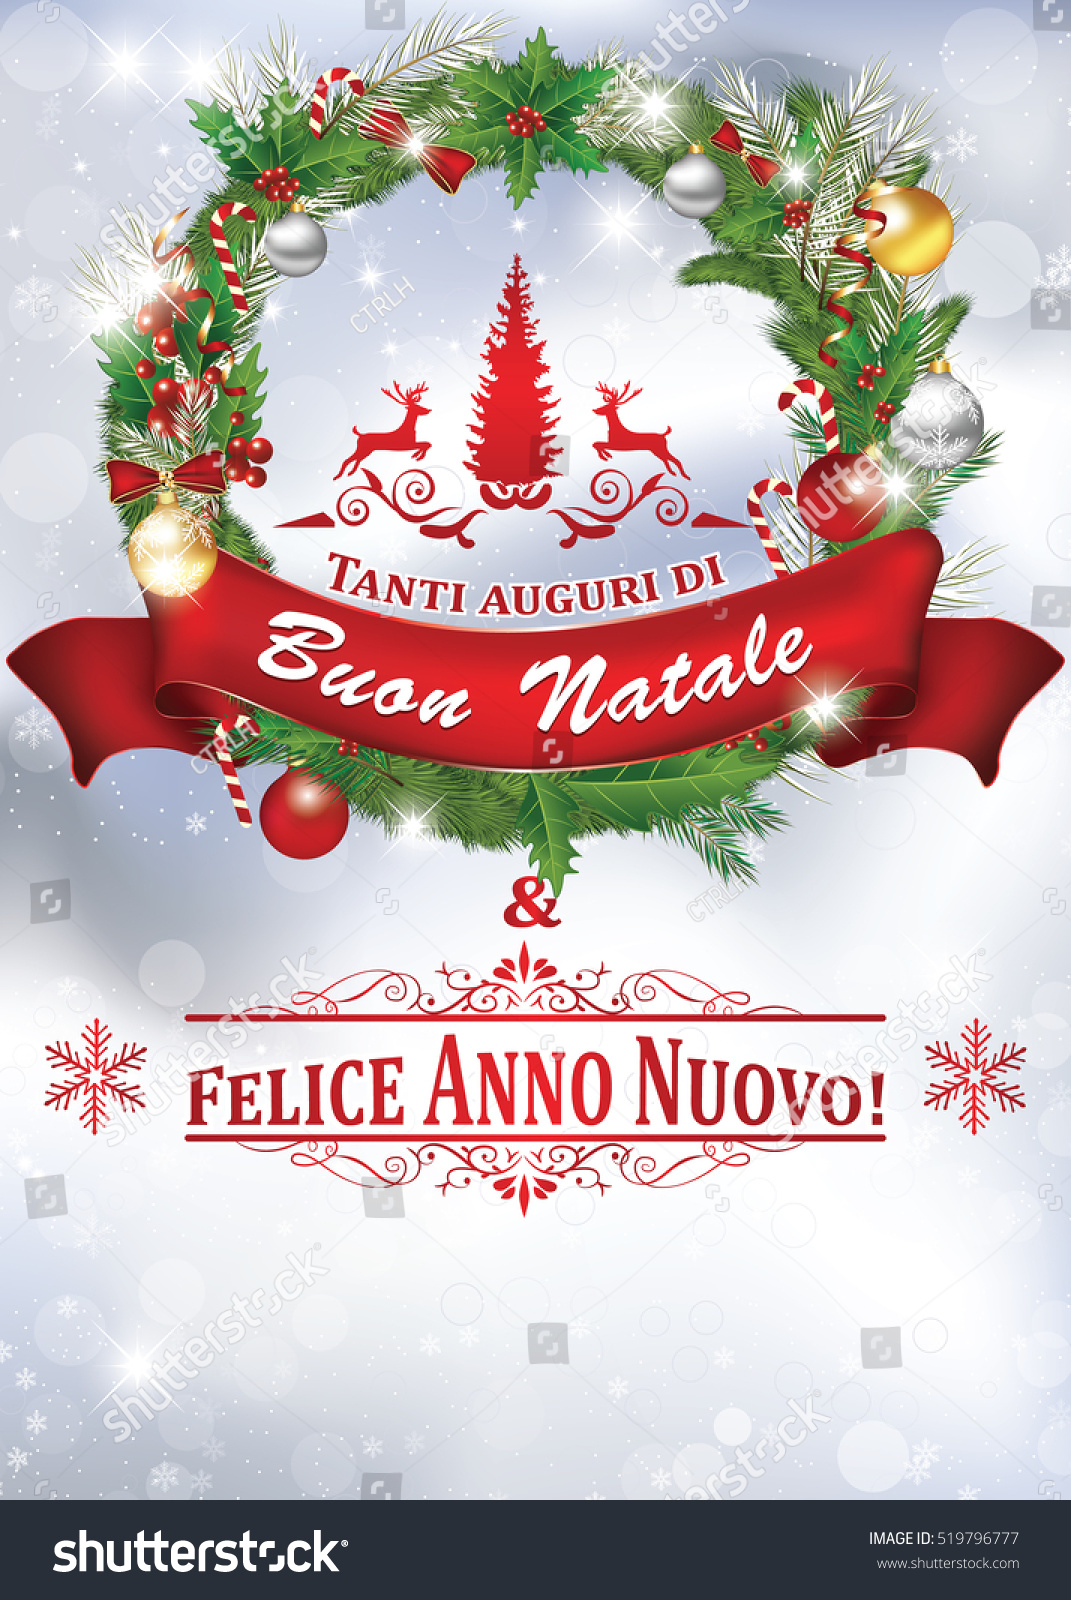 printable new year greeting card with message in italian language merry christmas and a happy